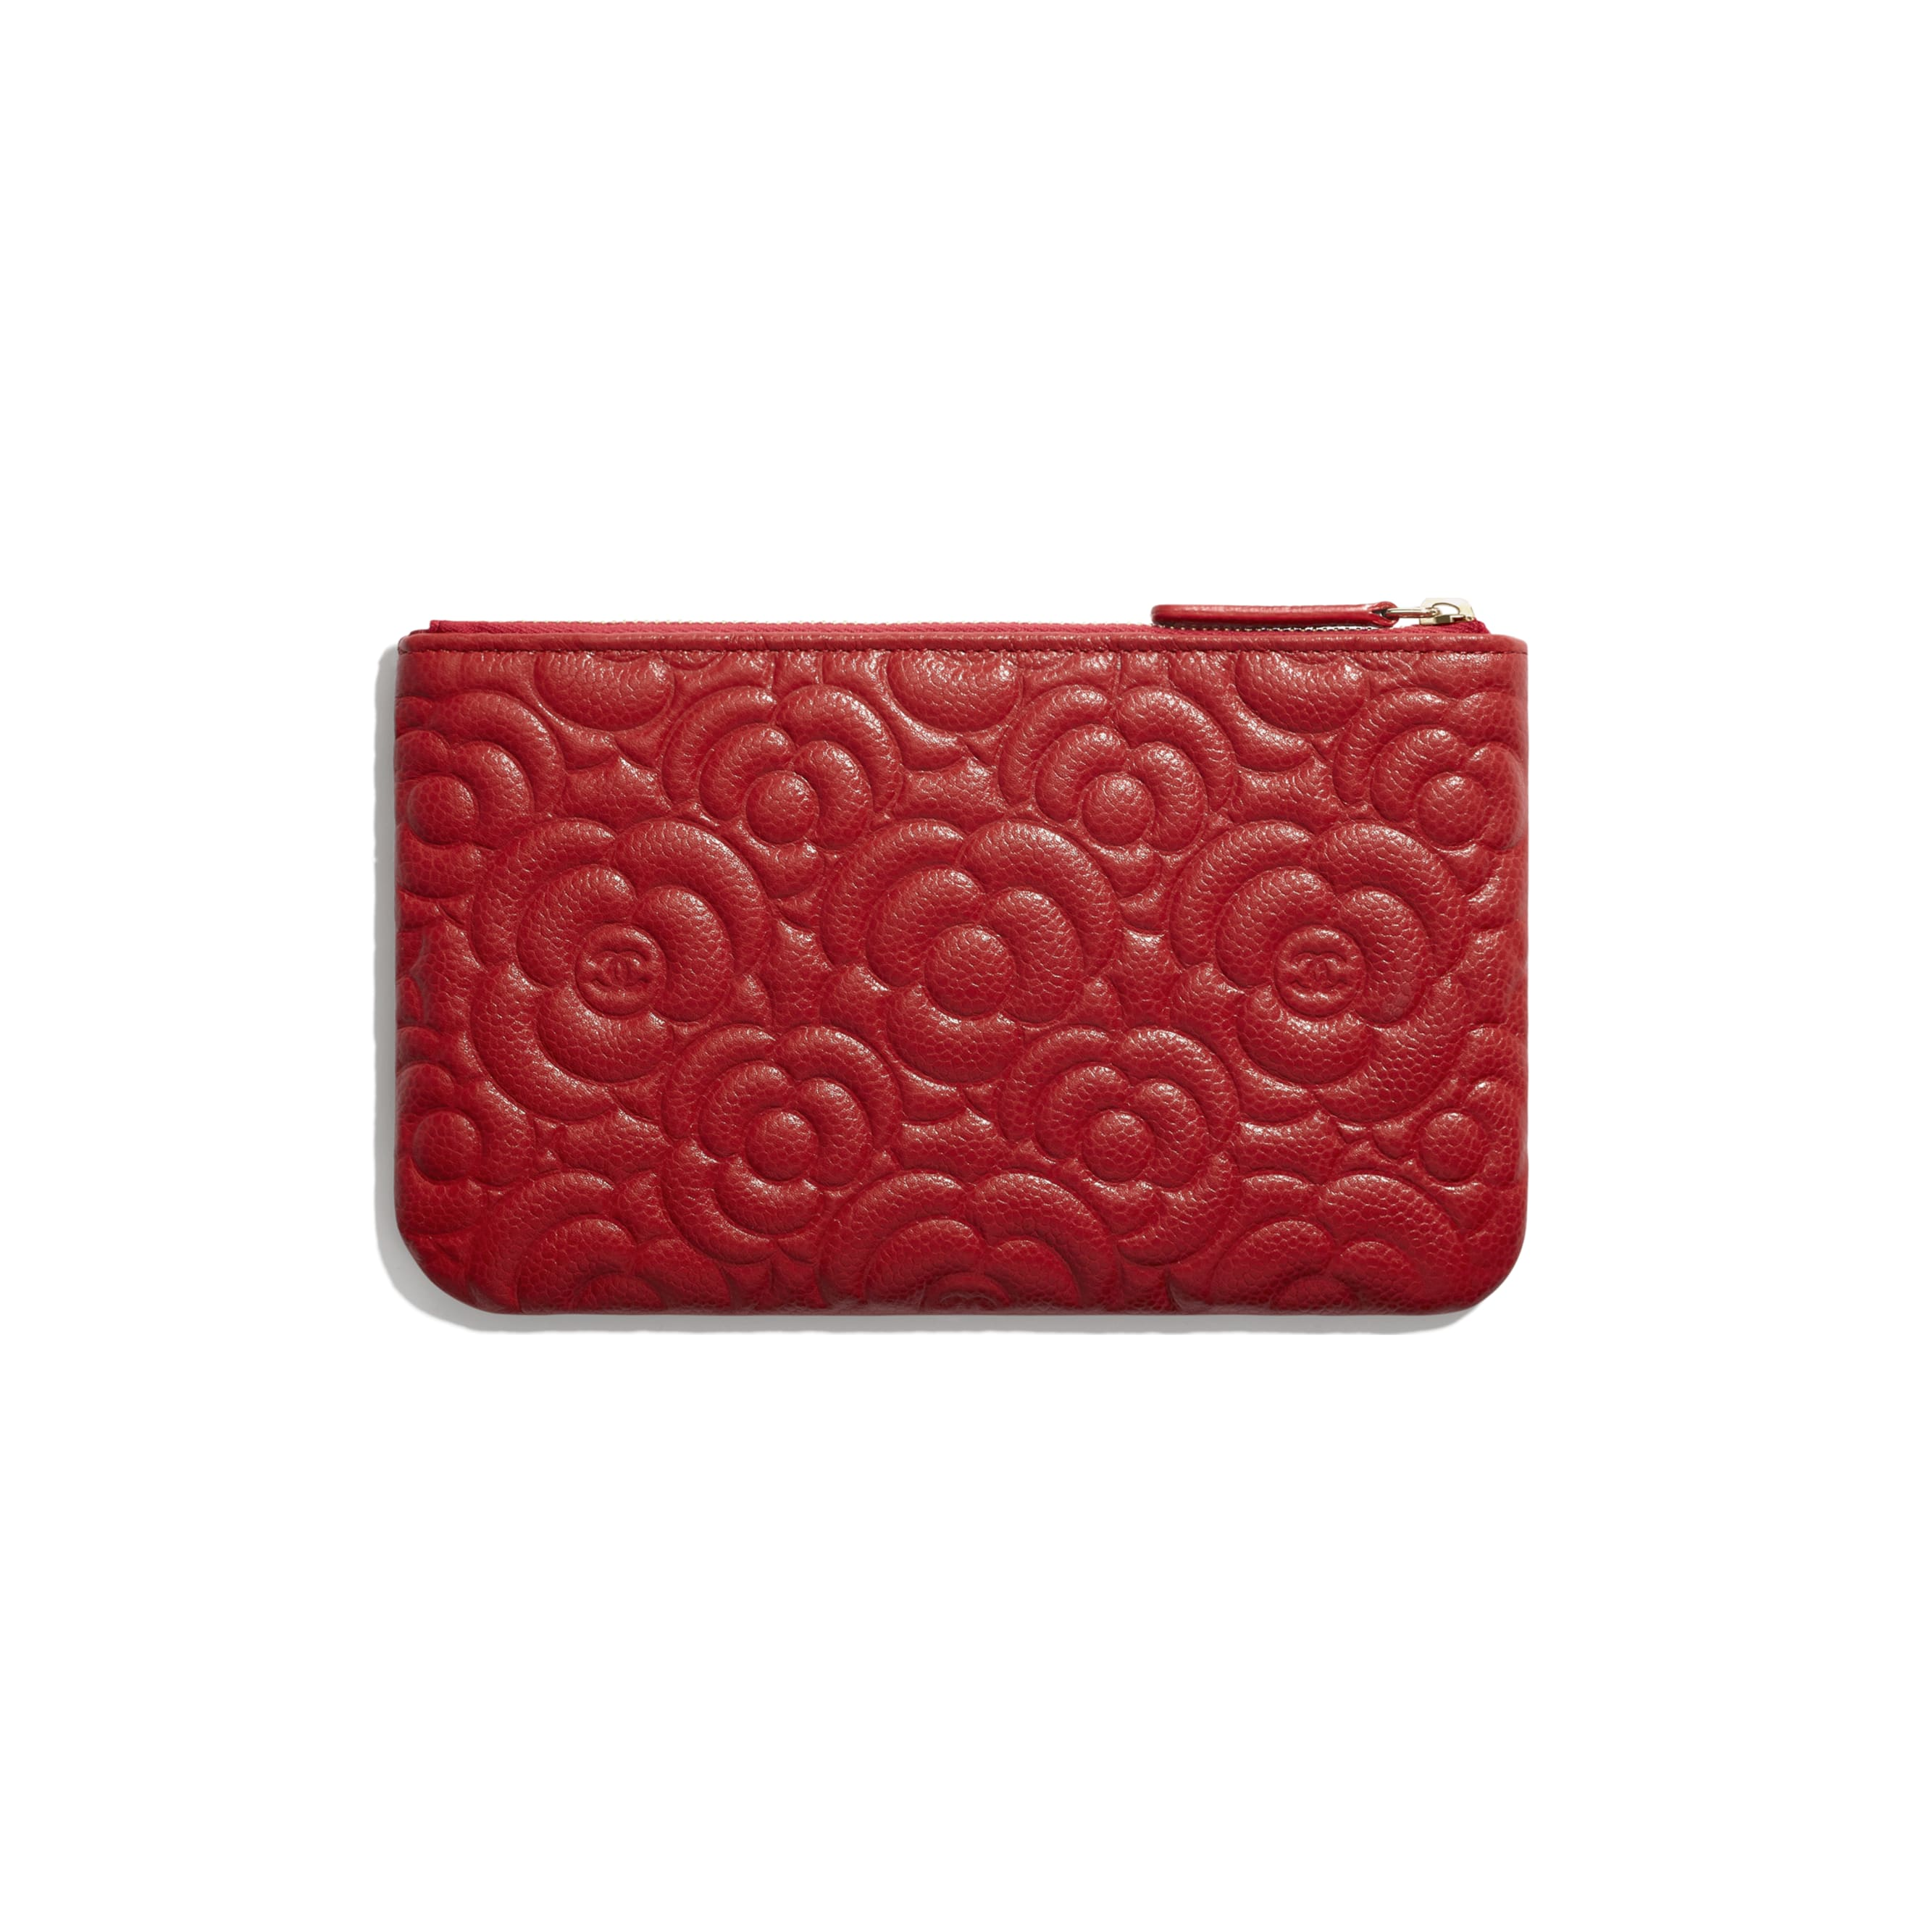 Small Pouch - Red - Grained Shiny Calfskin & Gold-Tone Metal - CHANEL - Alternative view - see standard sized version